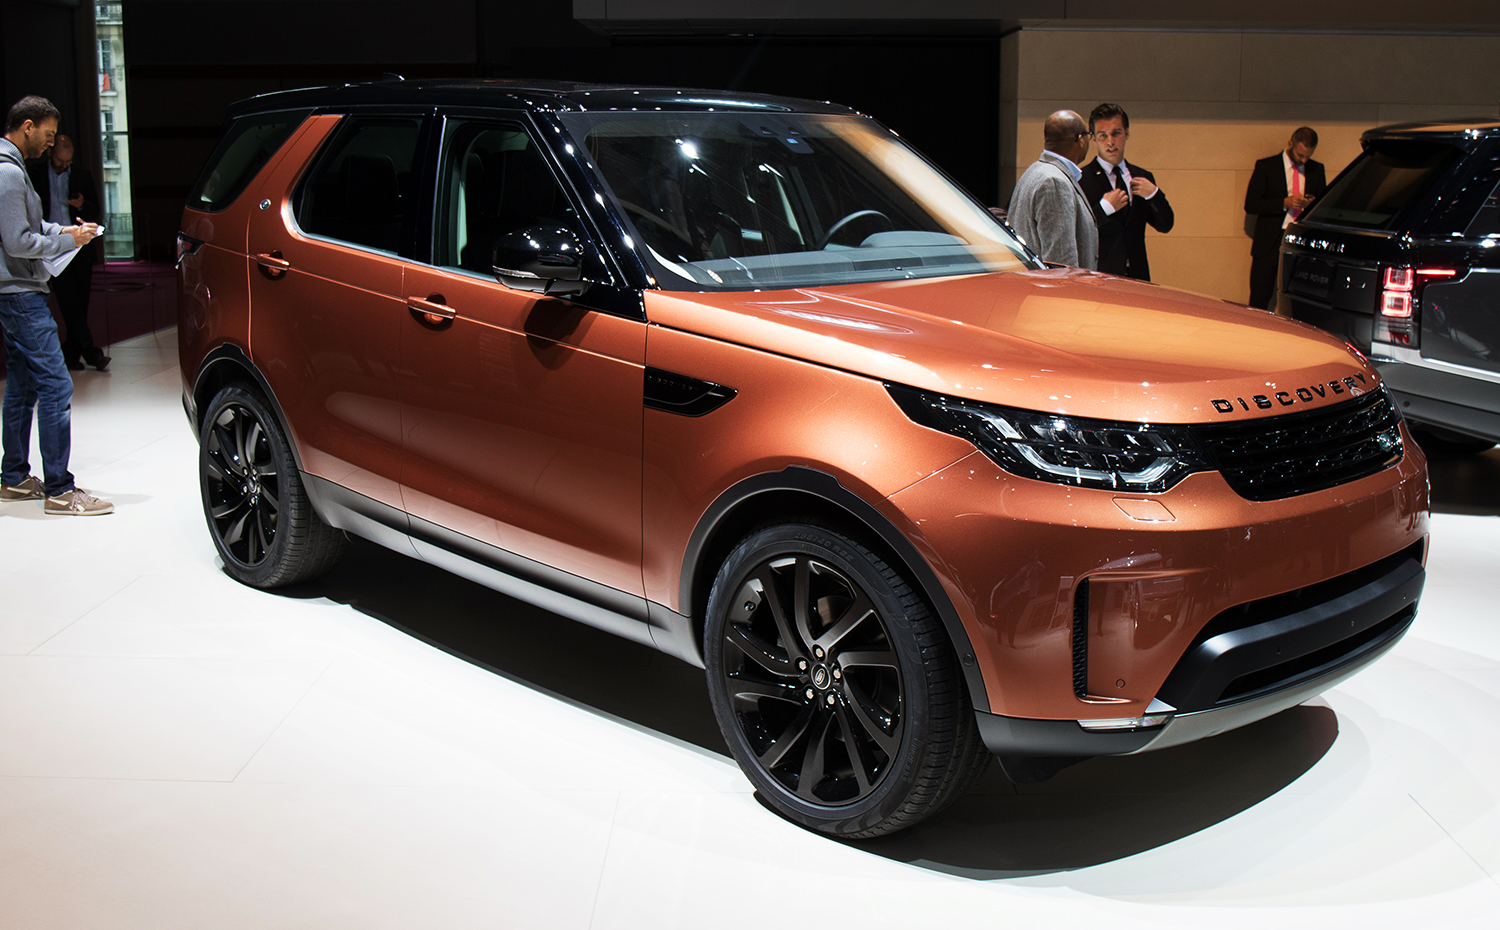 2017 land rover discovery revealed in paris full details on big new family suv photos 1 of 63. Black Bedroom Furniture Sets. Home Design Ideas